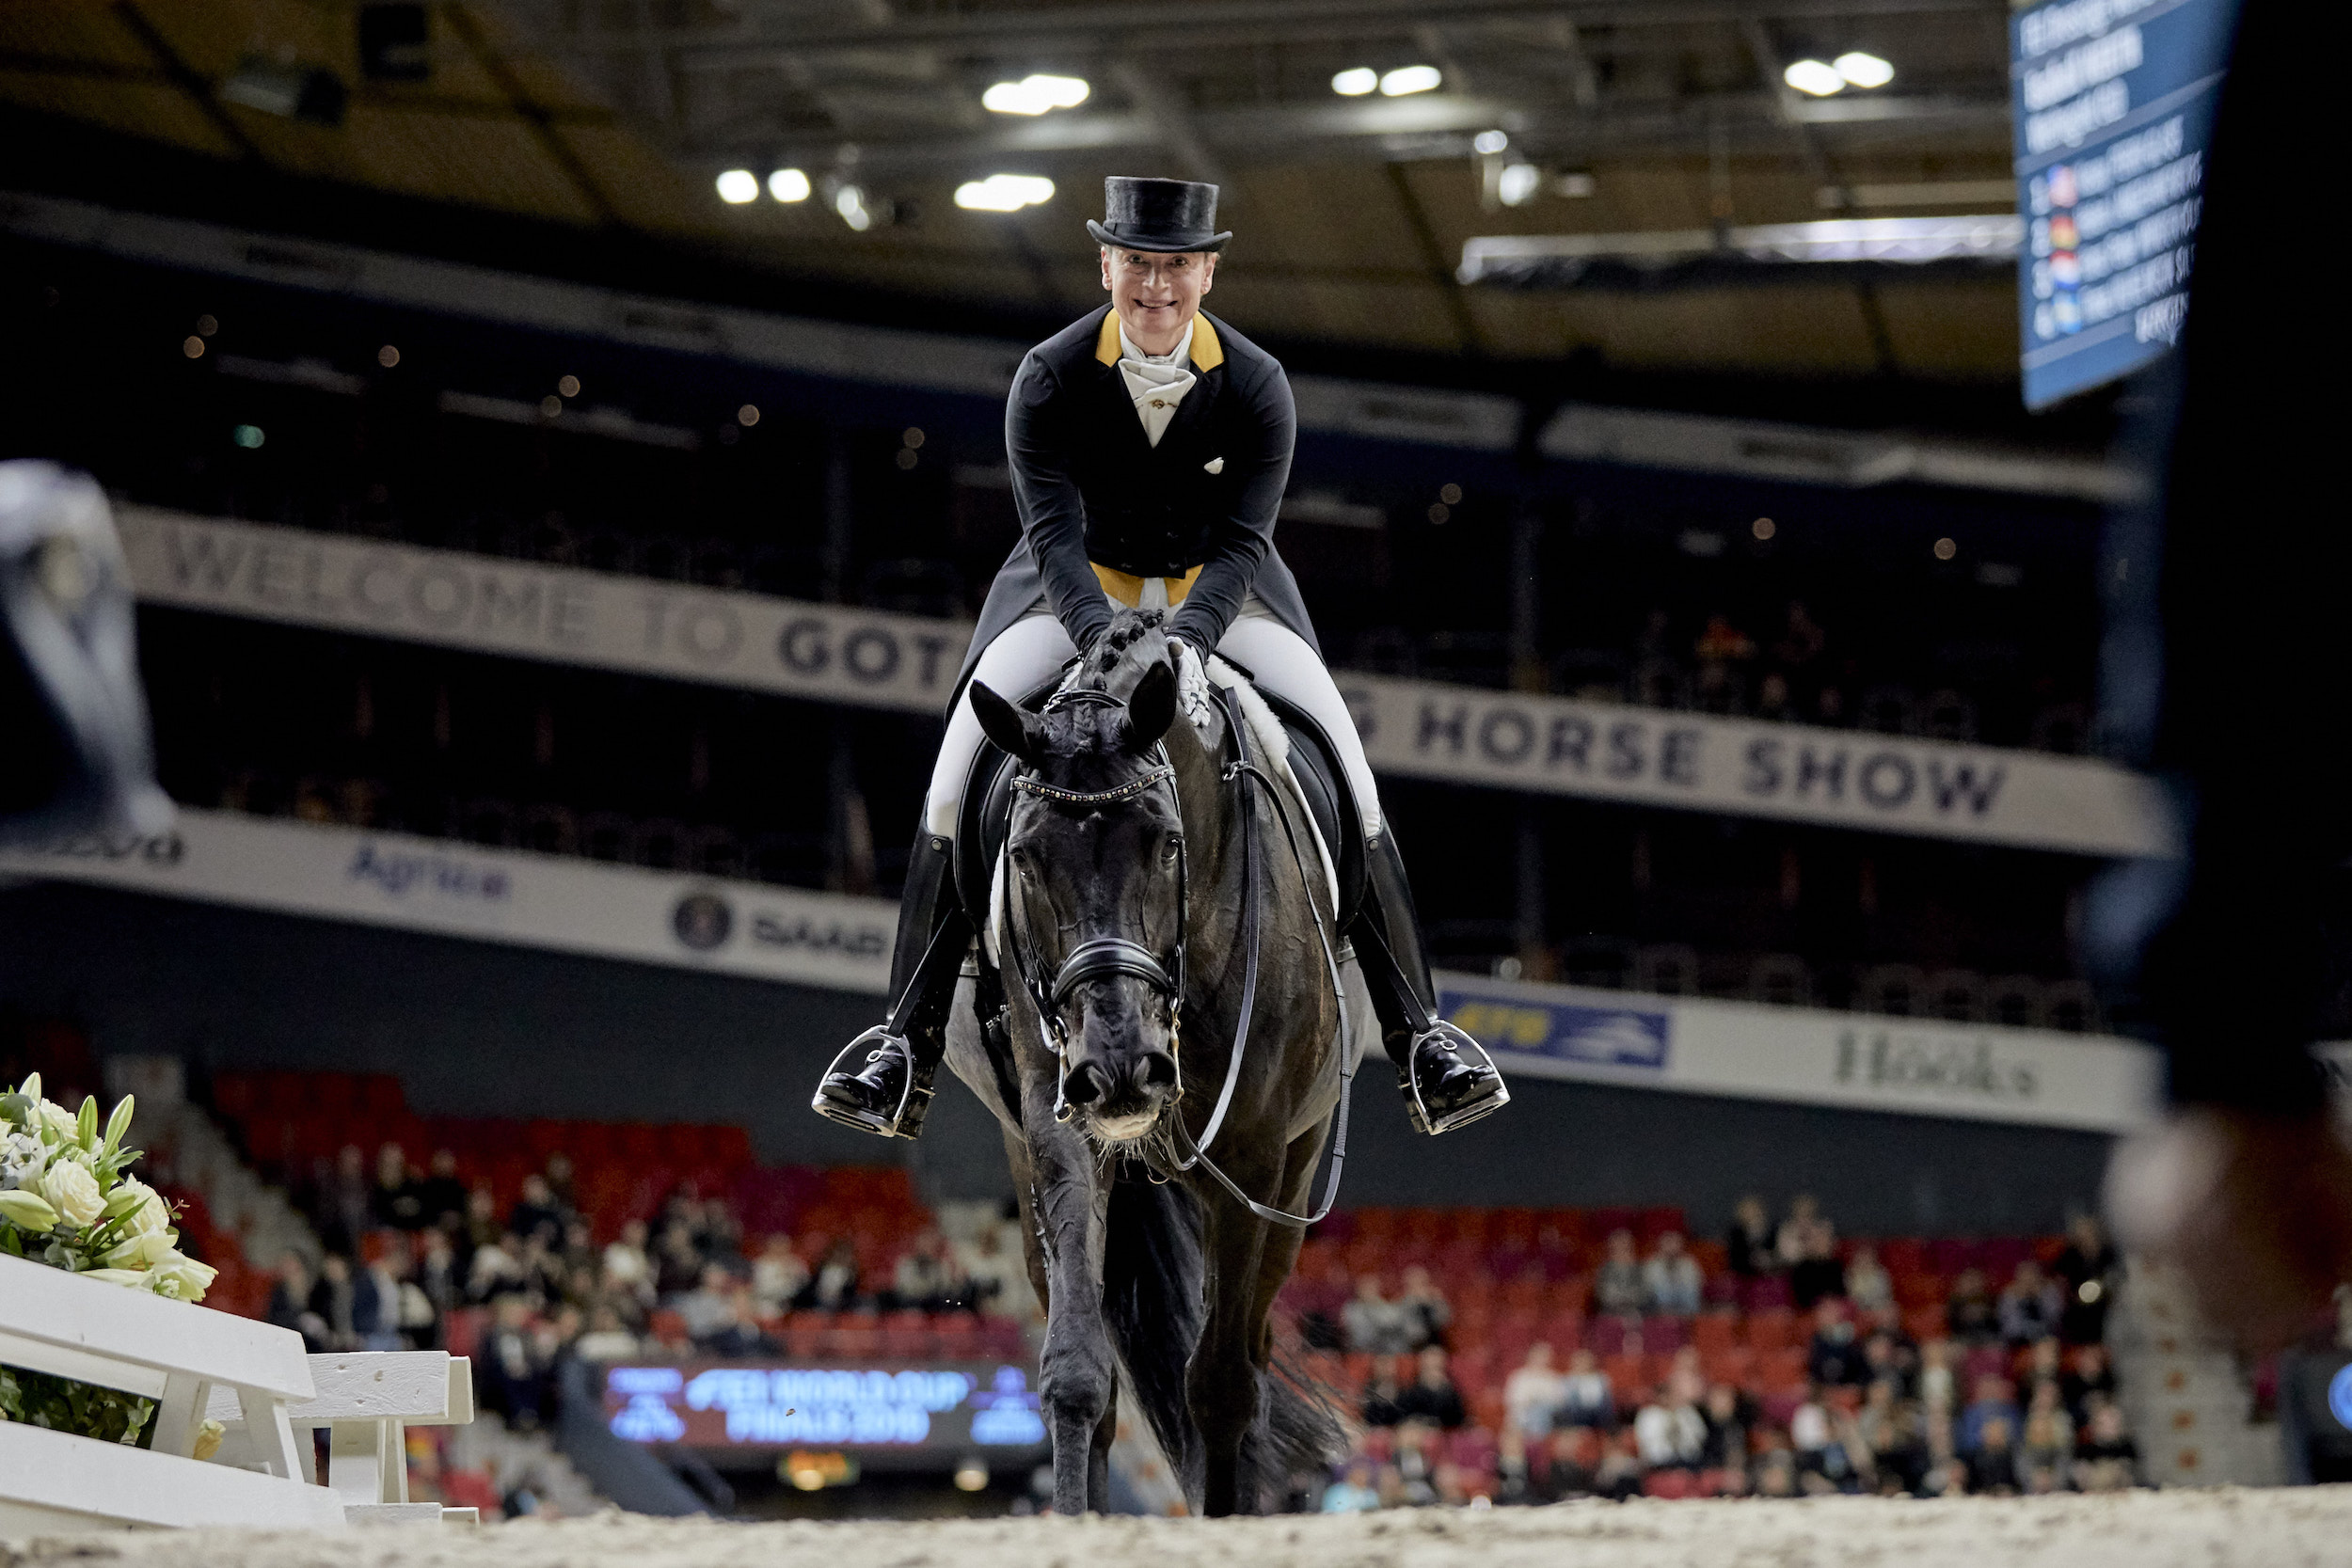 Isabell Werth & Weihegold OLD wins the Grand Prix at the 2019 FEI World Cup Dressage Finals